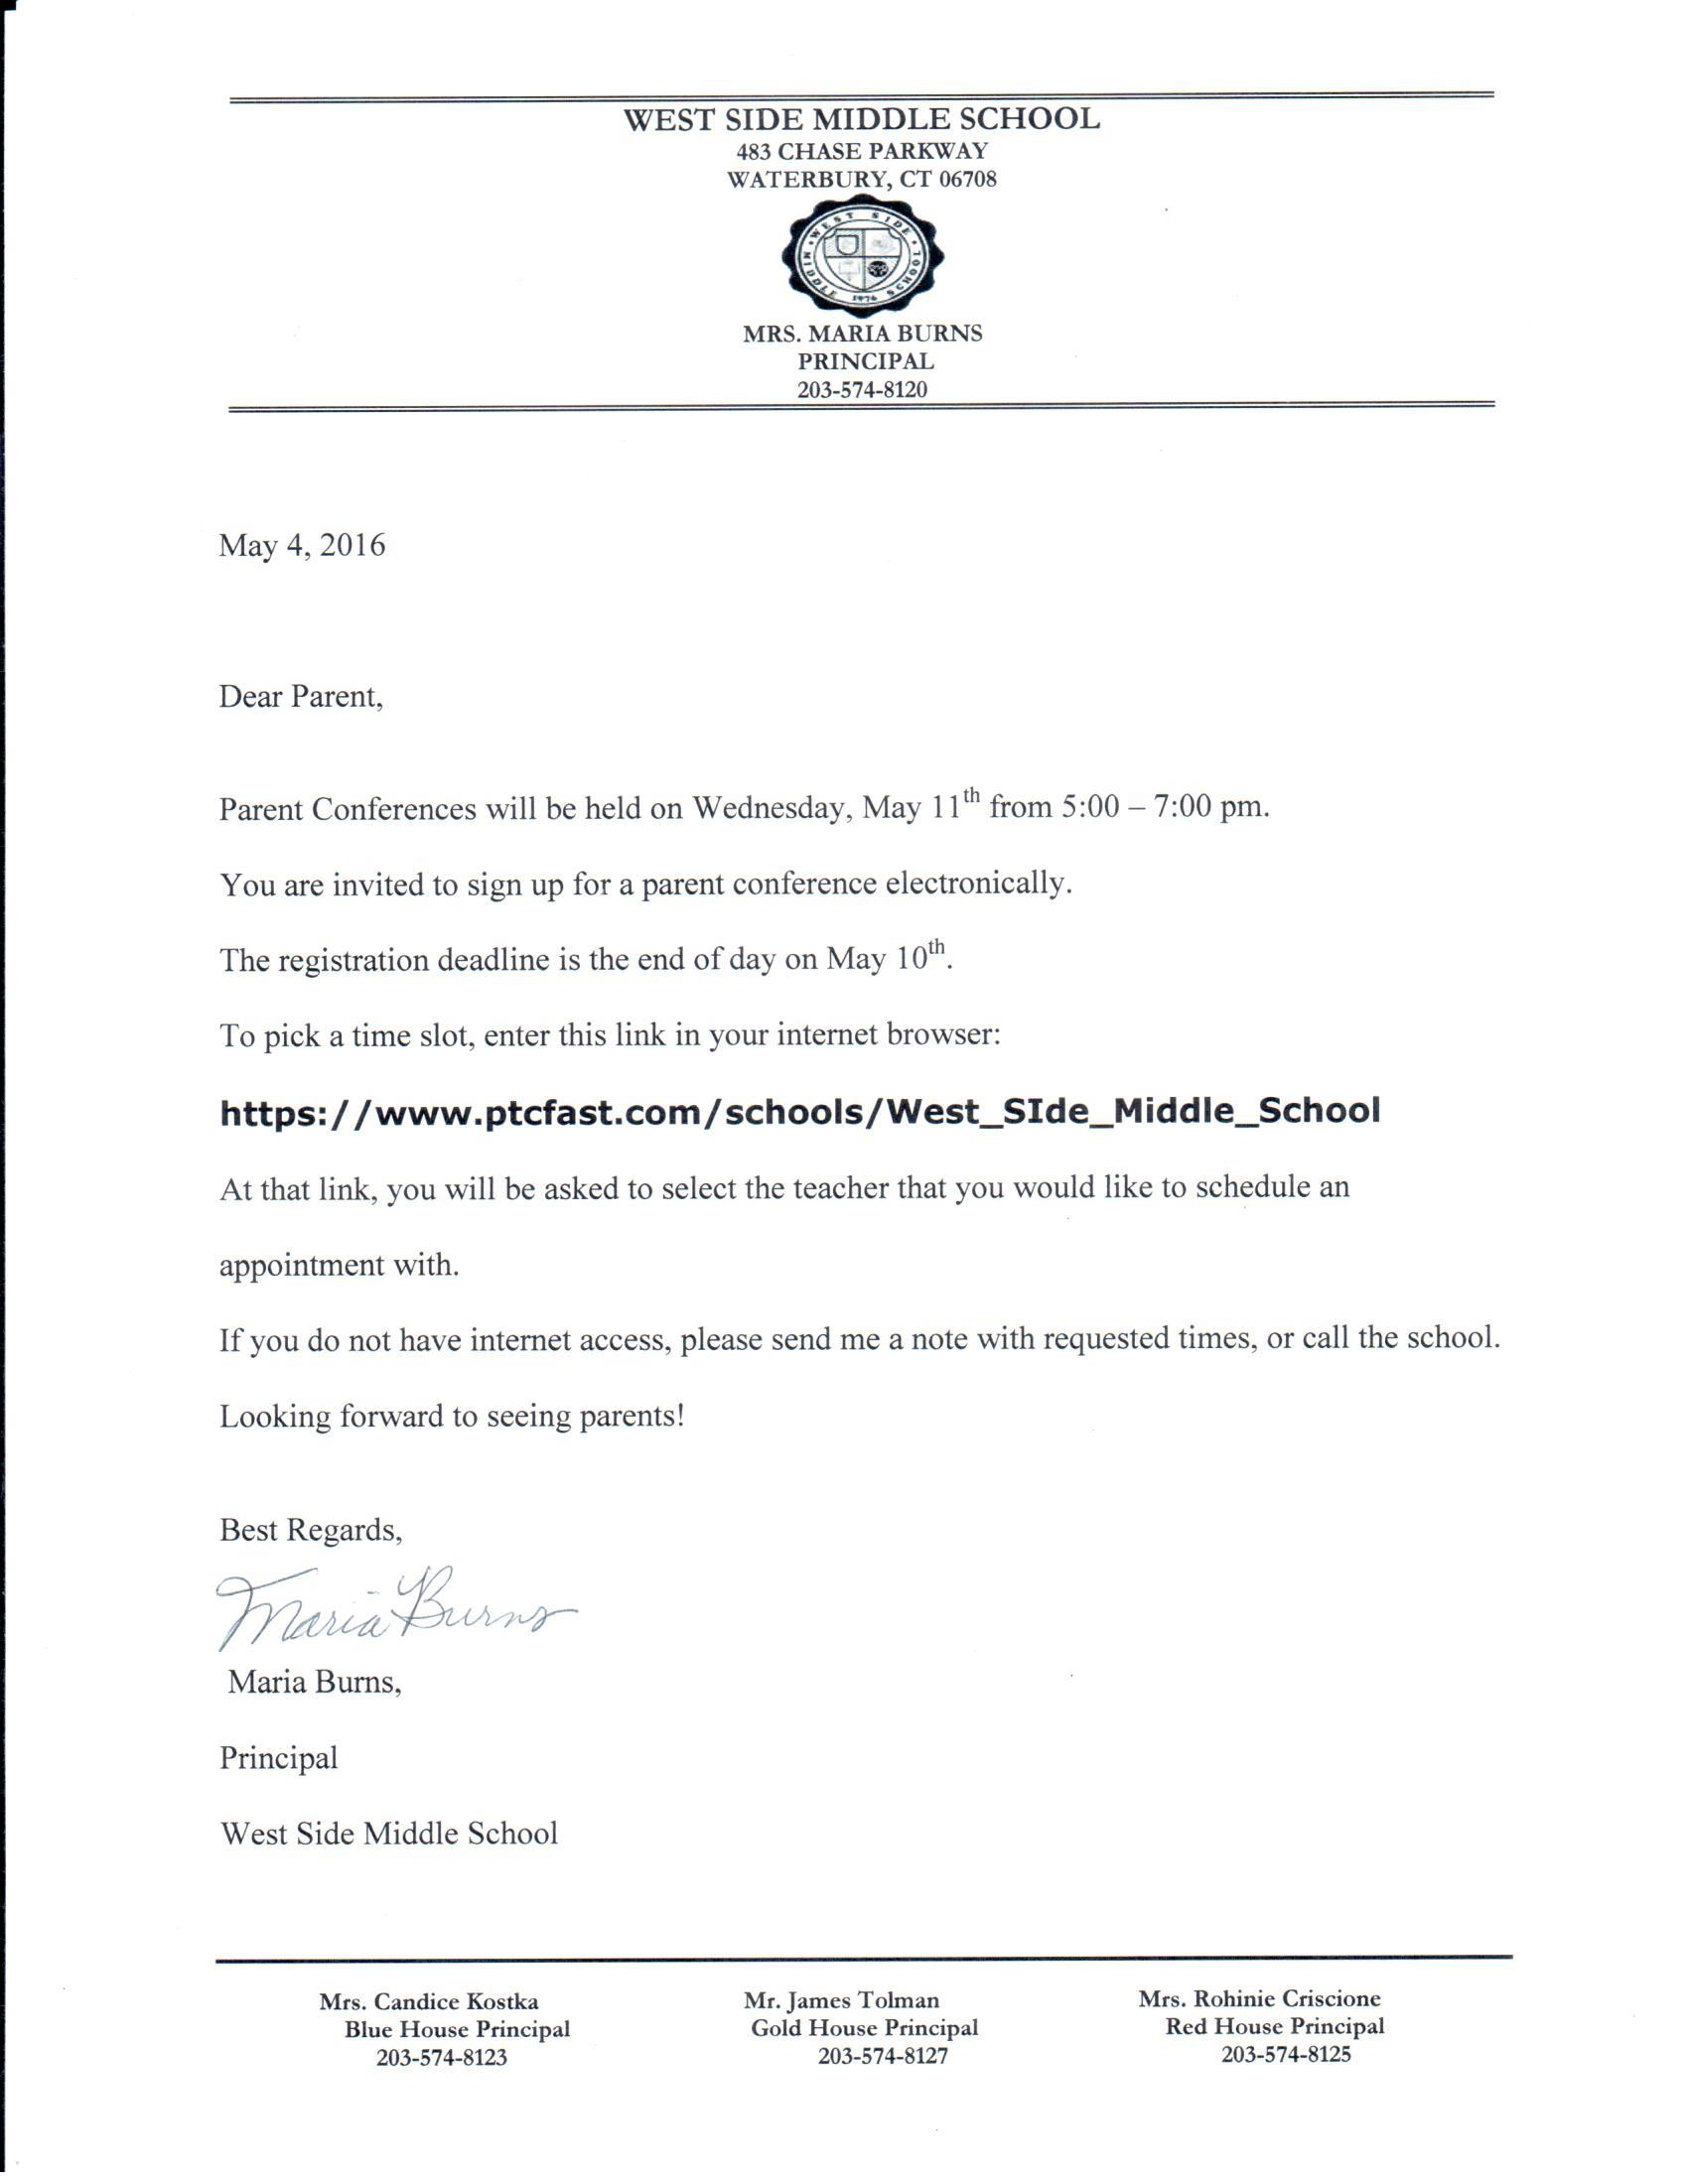 Parent Conferences Information - West Side Middle School